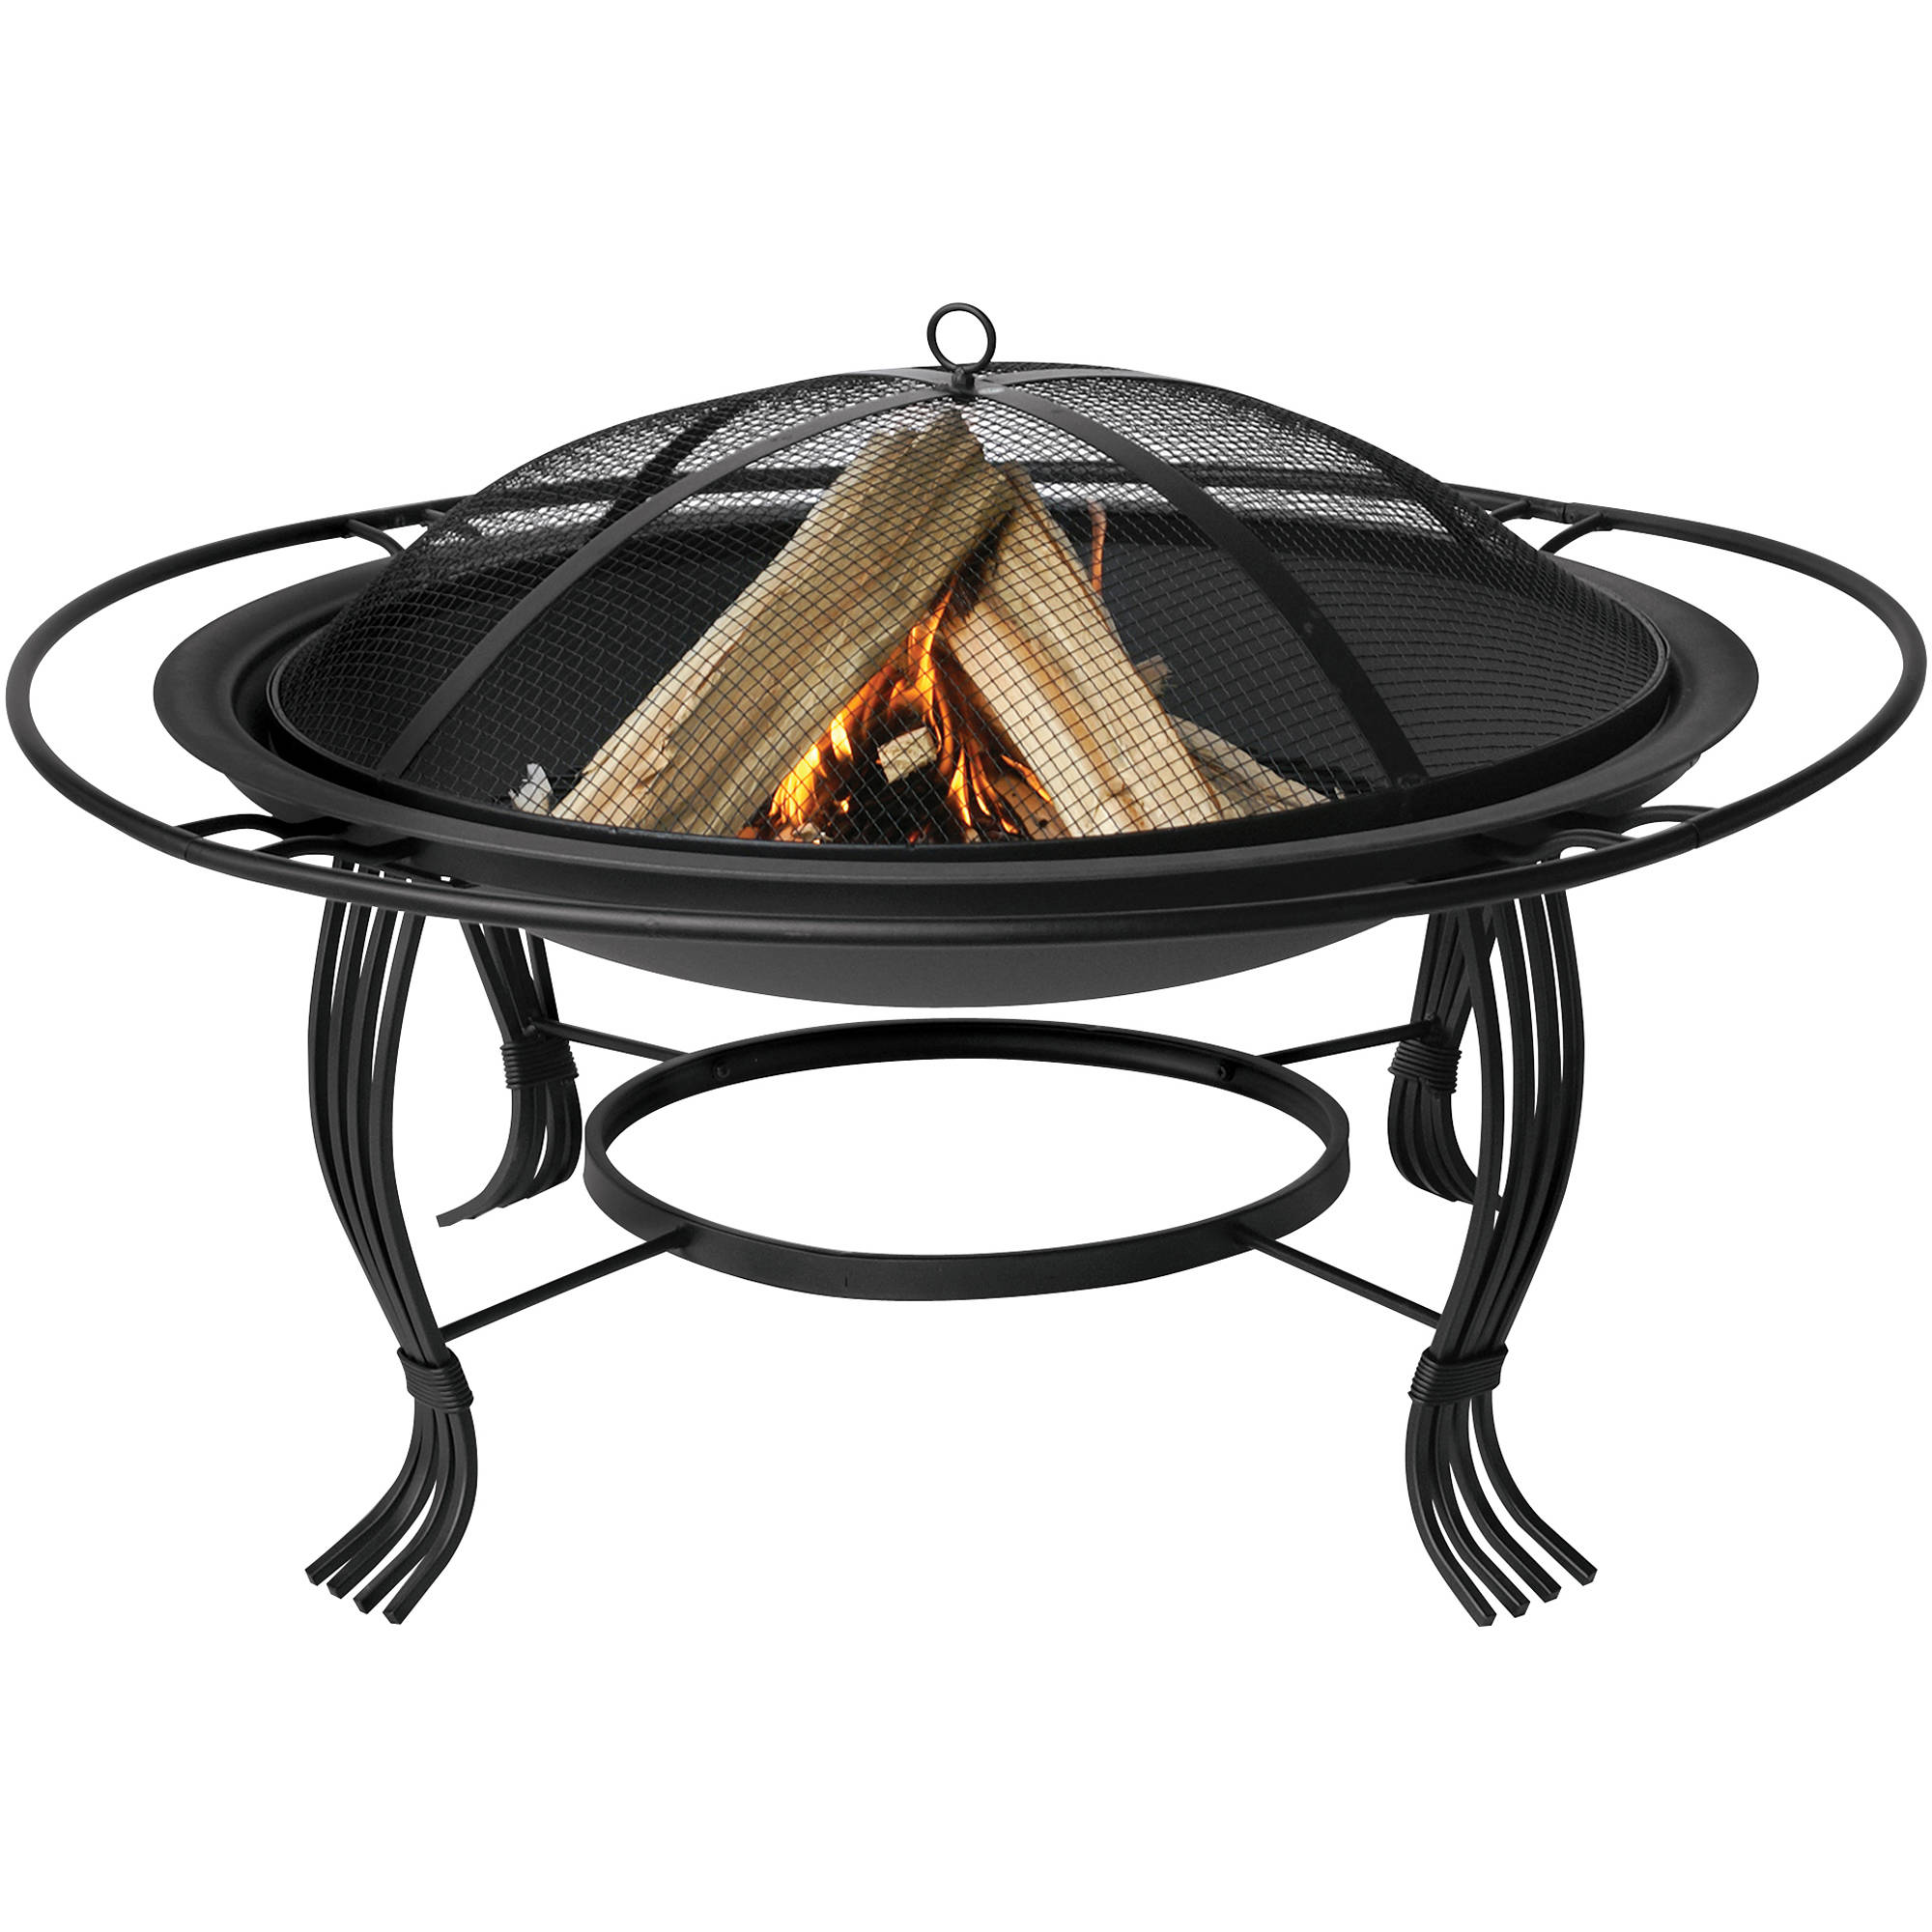 uniflame fire pit bowl with outer ring black